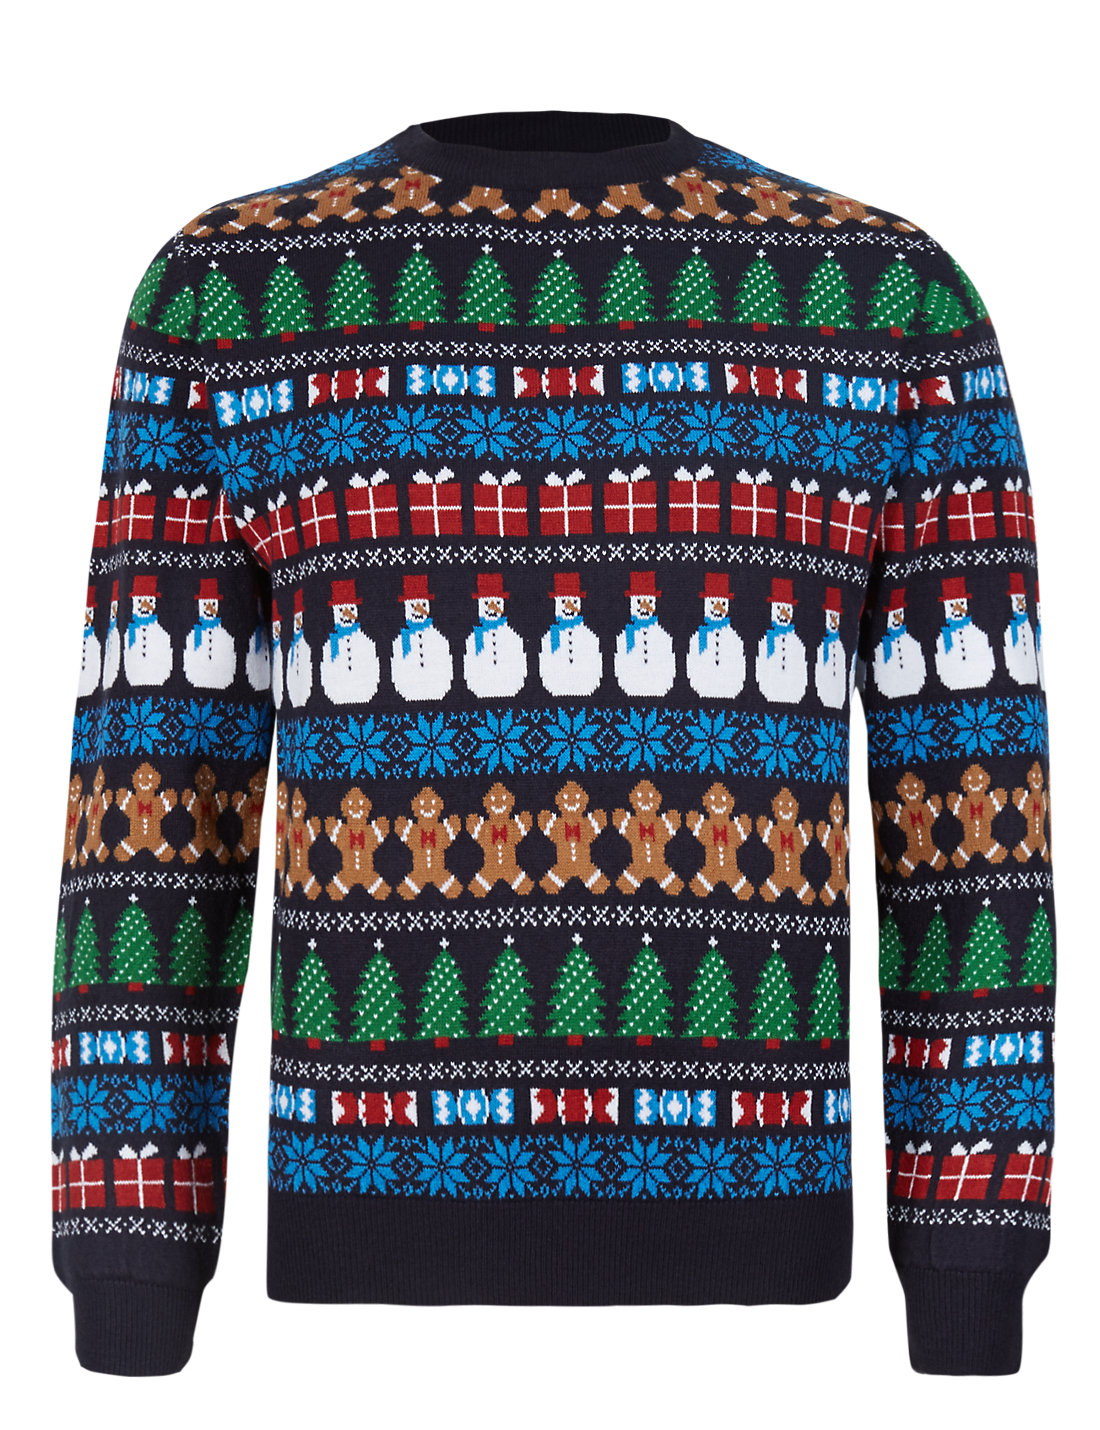 results for m and s christmas jumper Save m and s christmas jumper to get e-mail alerts and updates on your eBay Feed. Unfollow m and s christmas jumper .